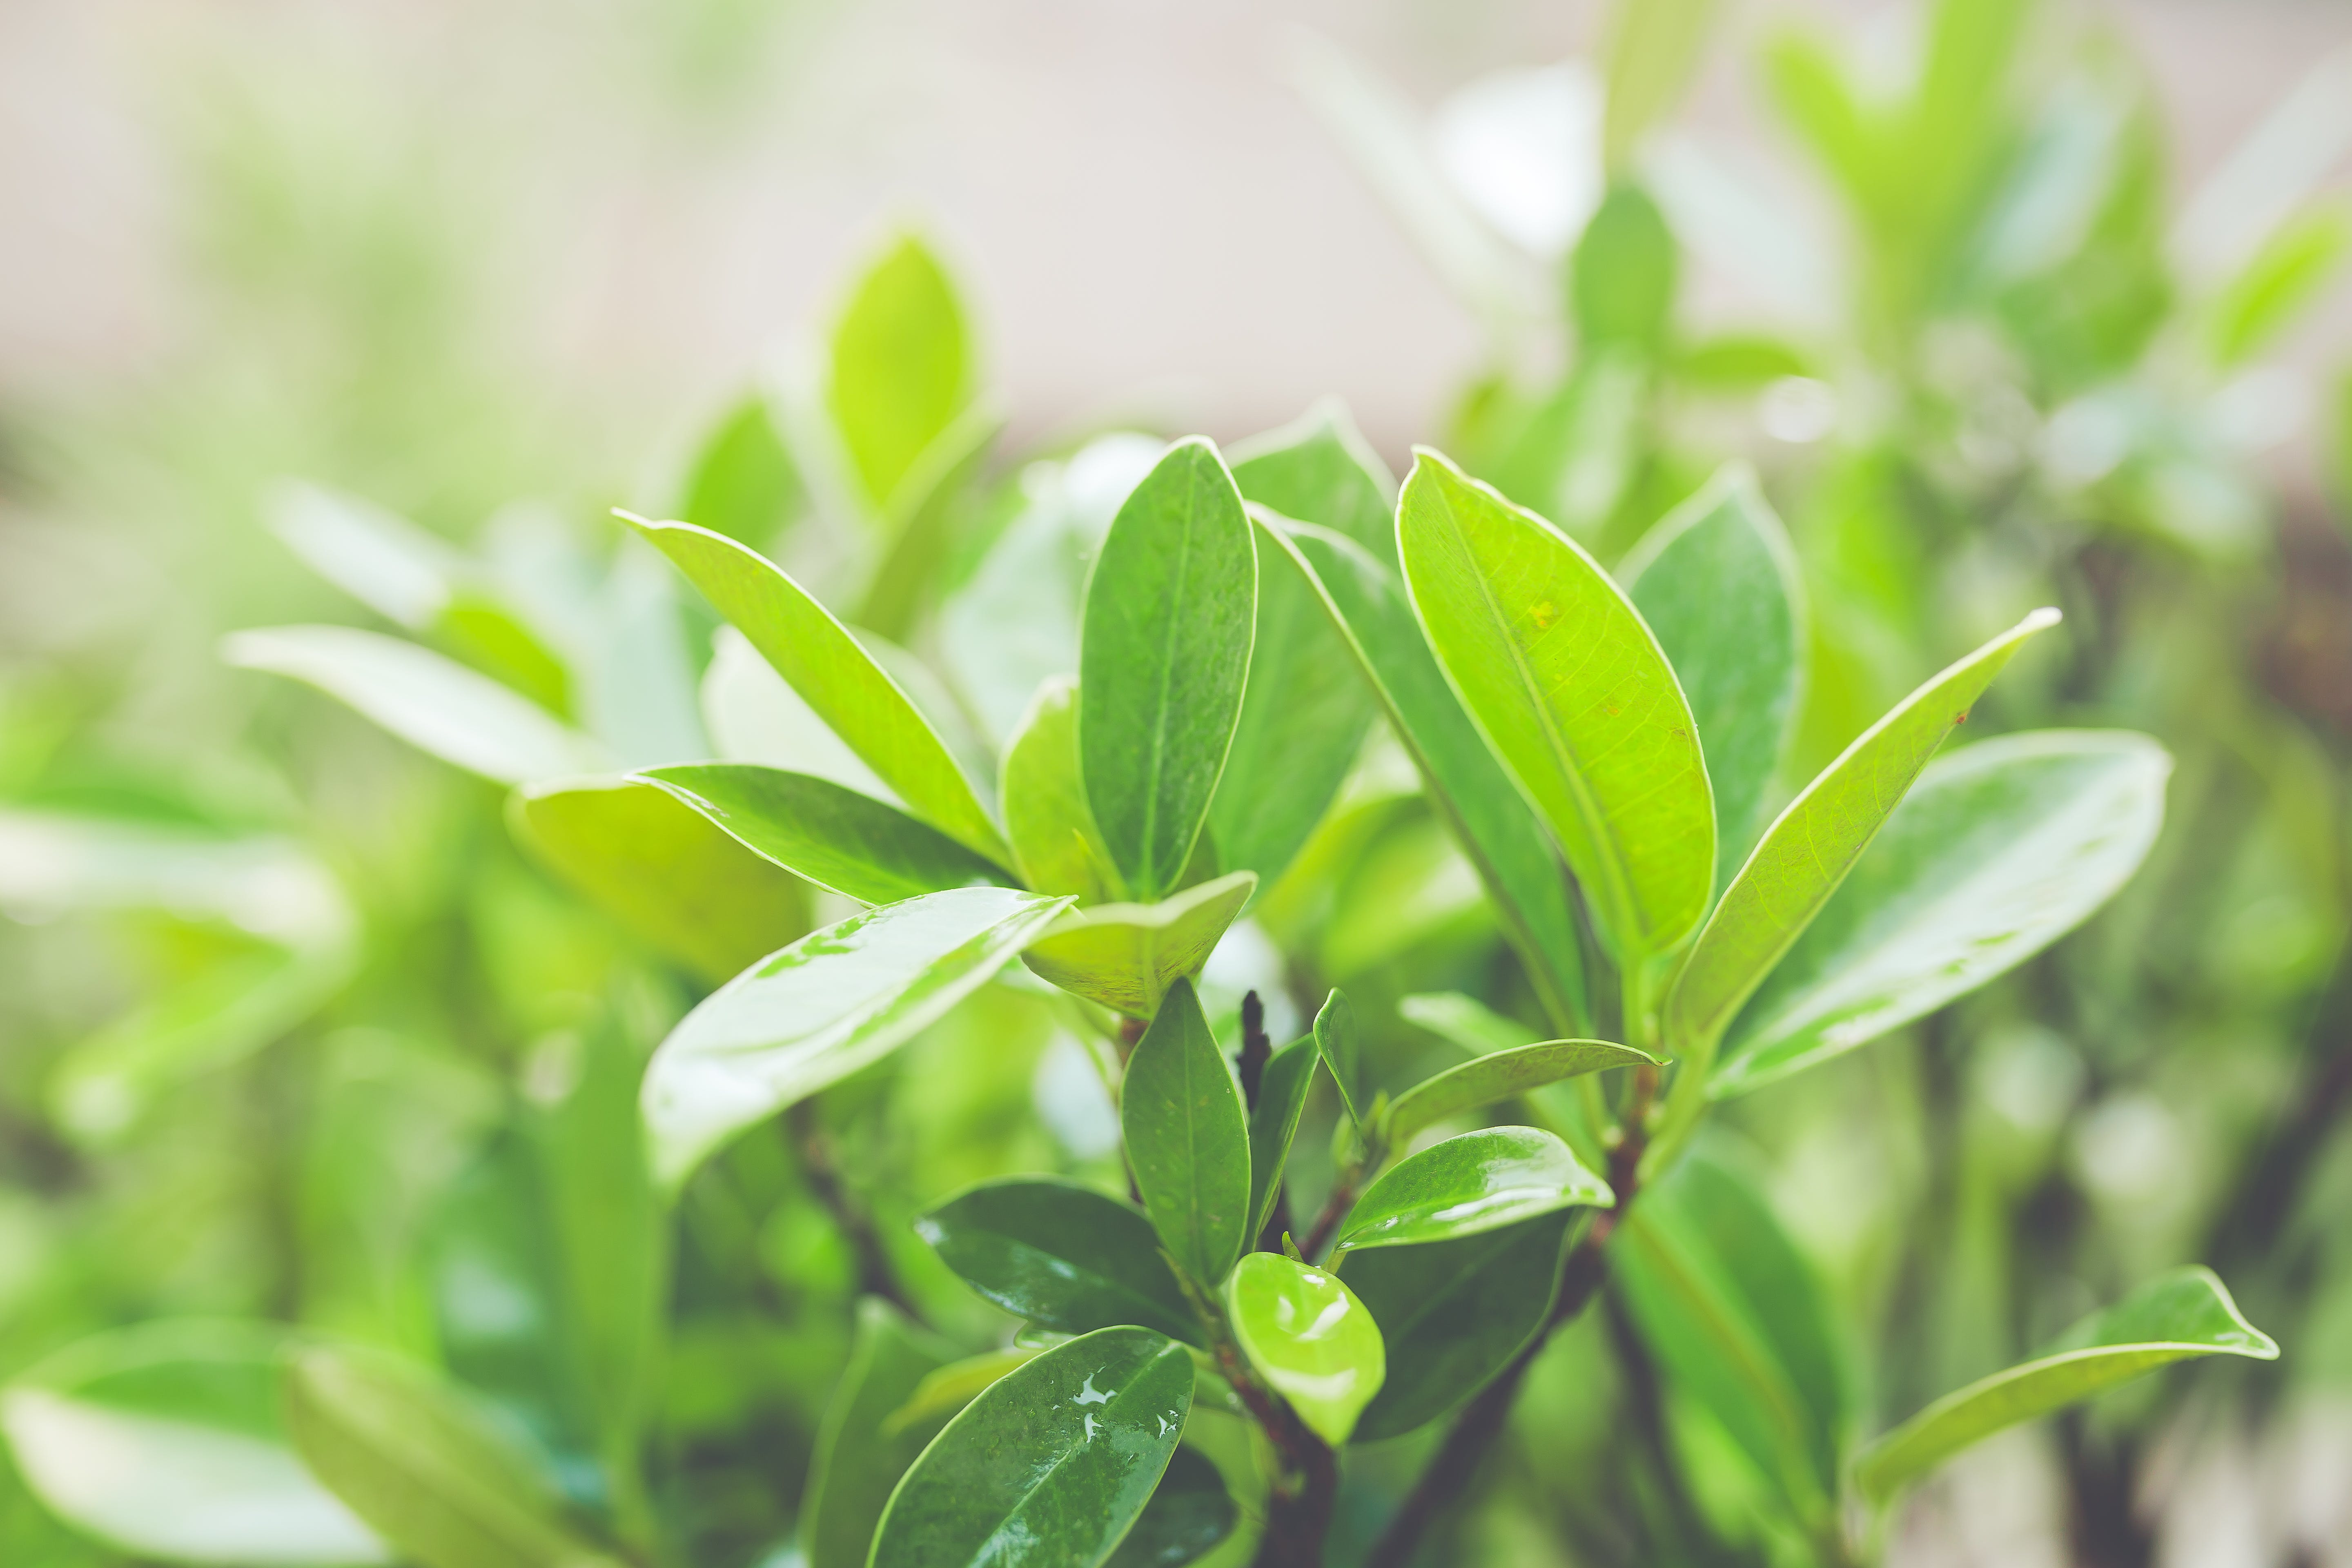 Close-Up Photography of Green Leaves